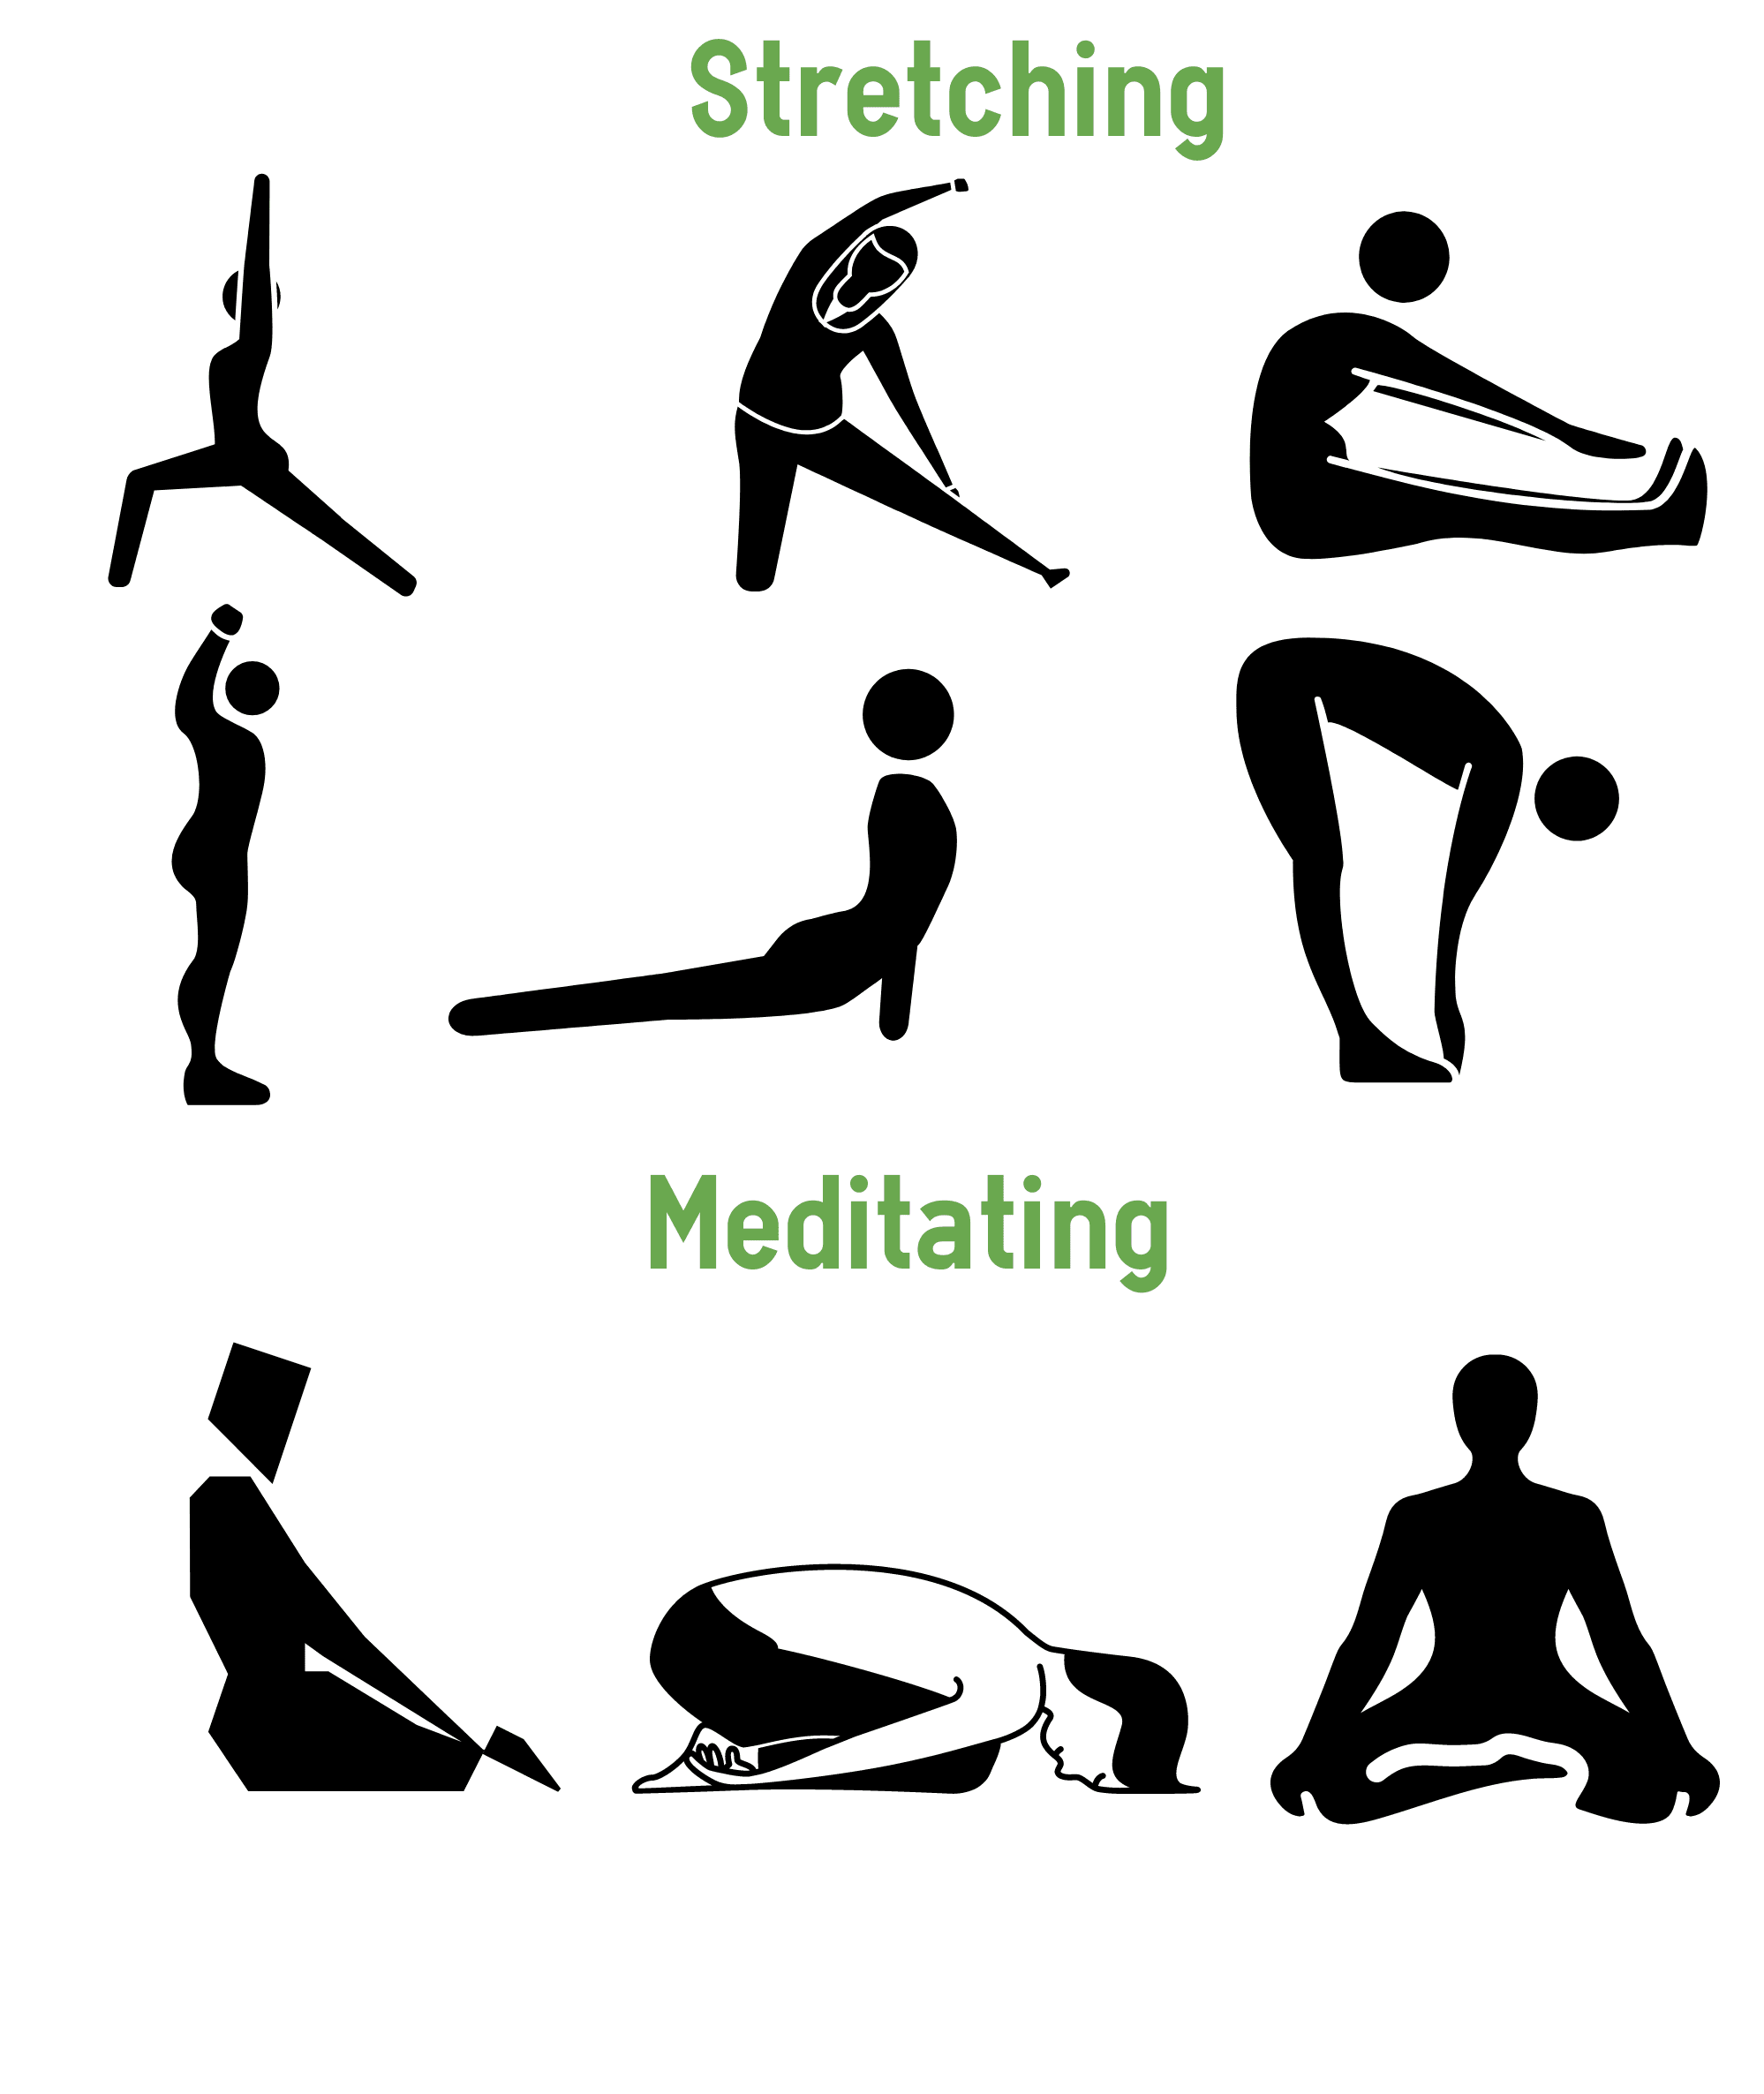 Stretching and Meditating